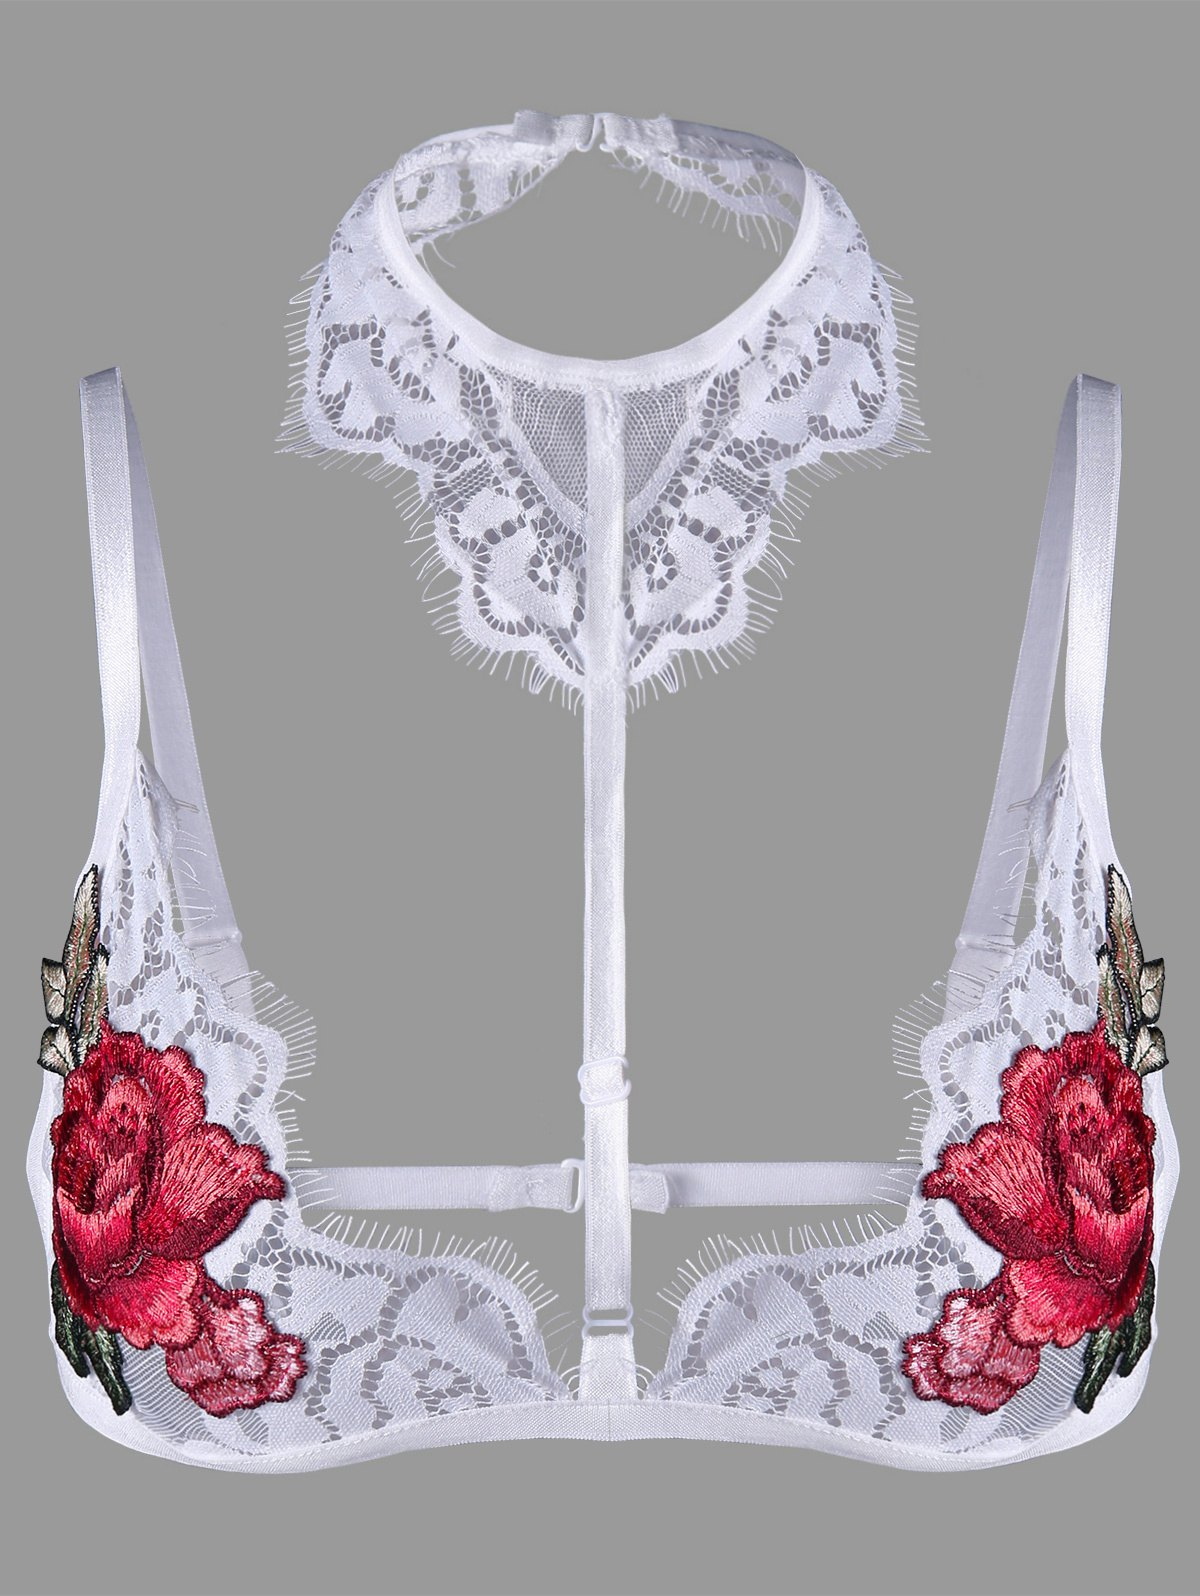 Lace Flower Embroidered Choker Bralette ac powered plasma ball red light lightning sphere 220v eu plug